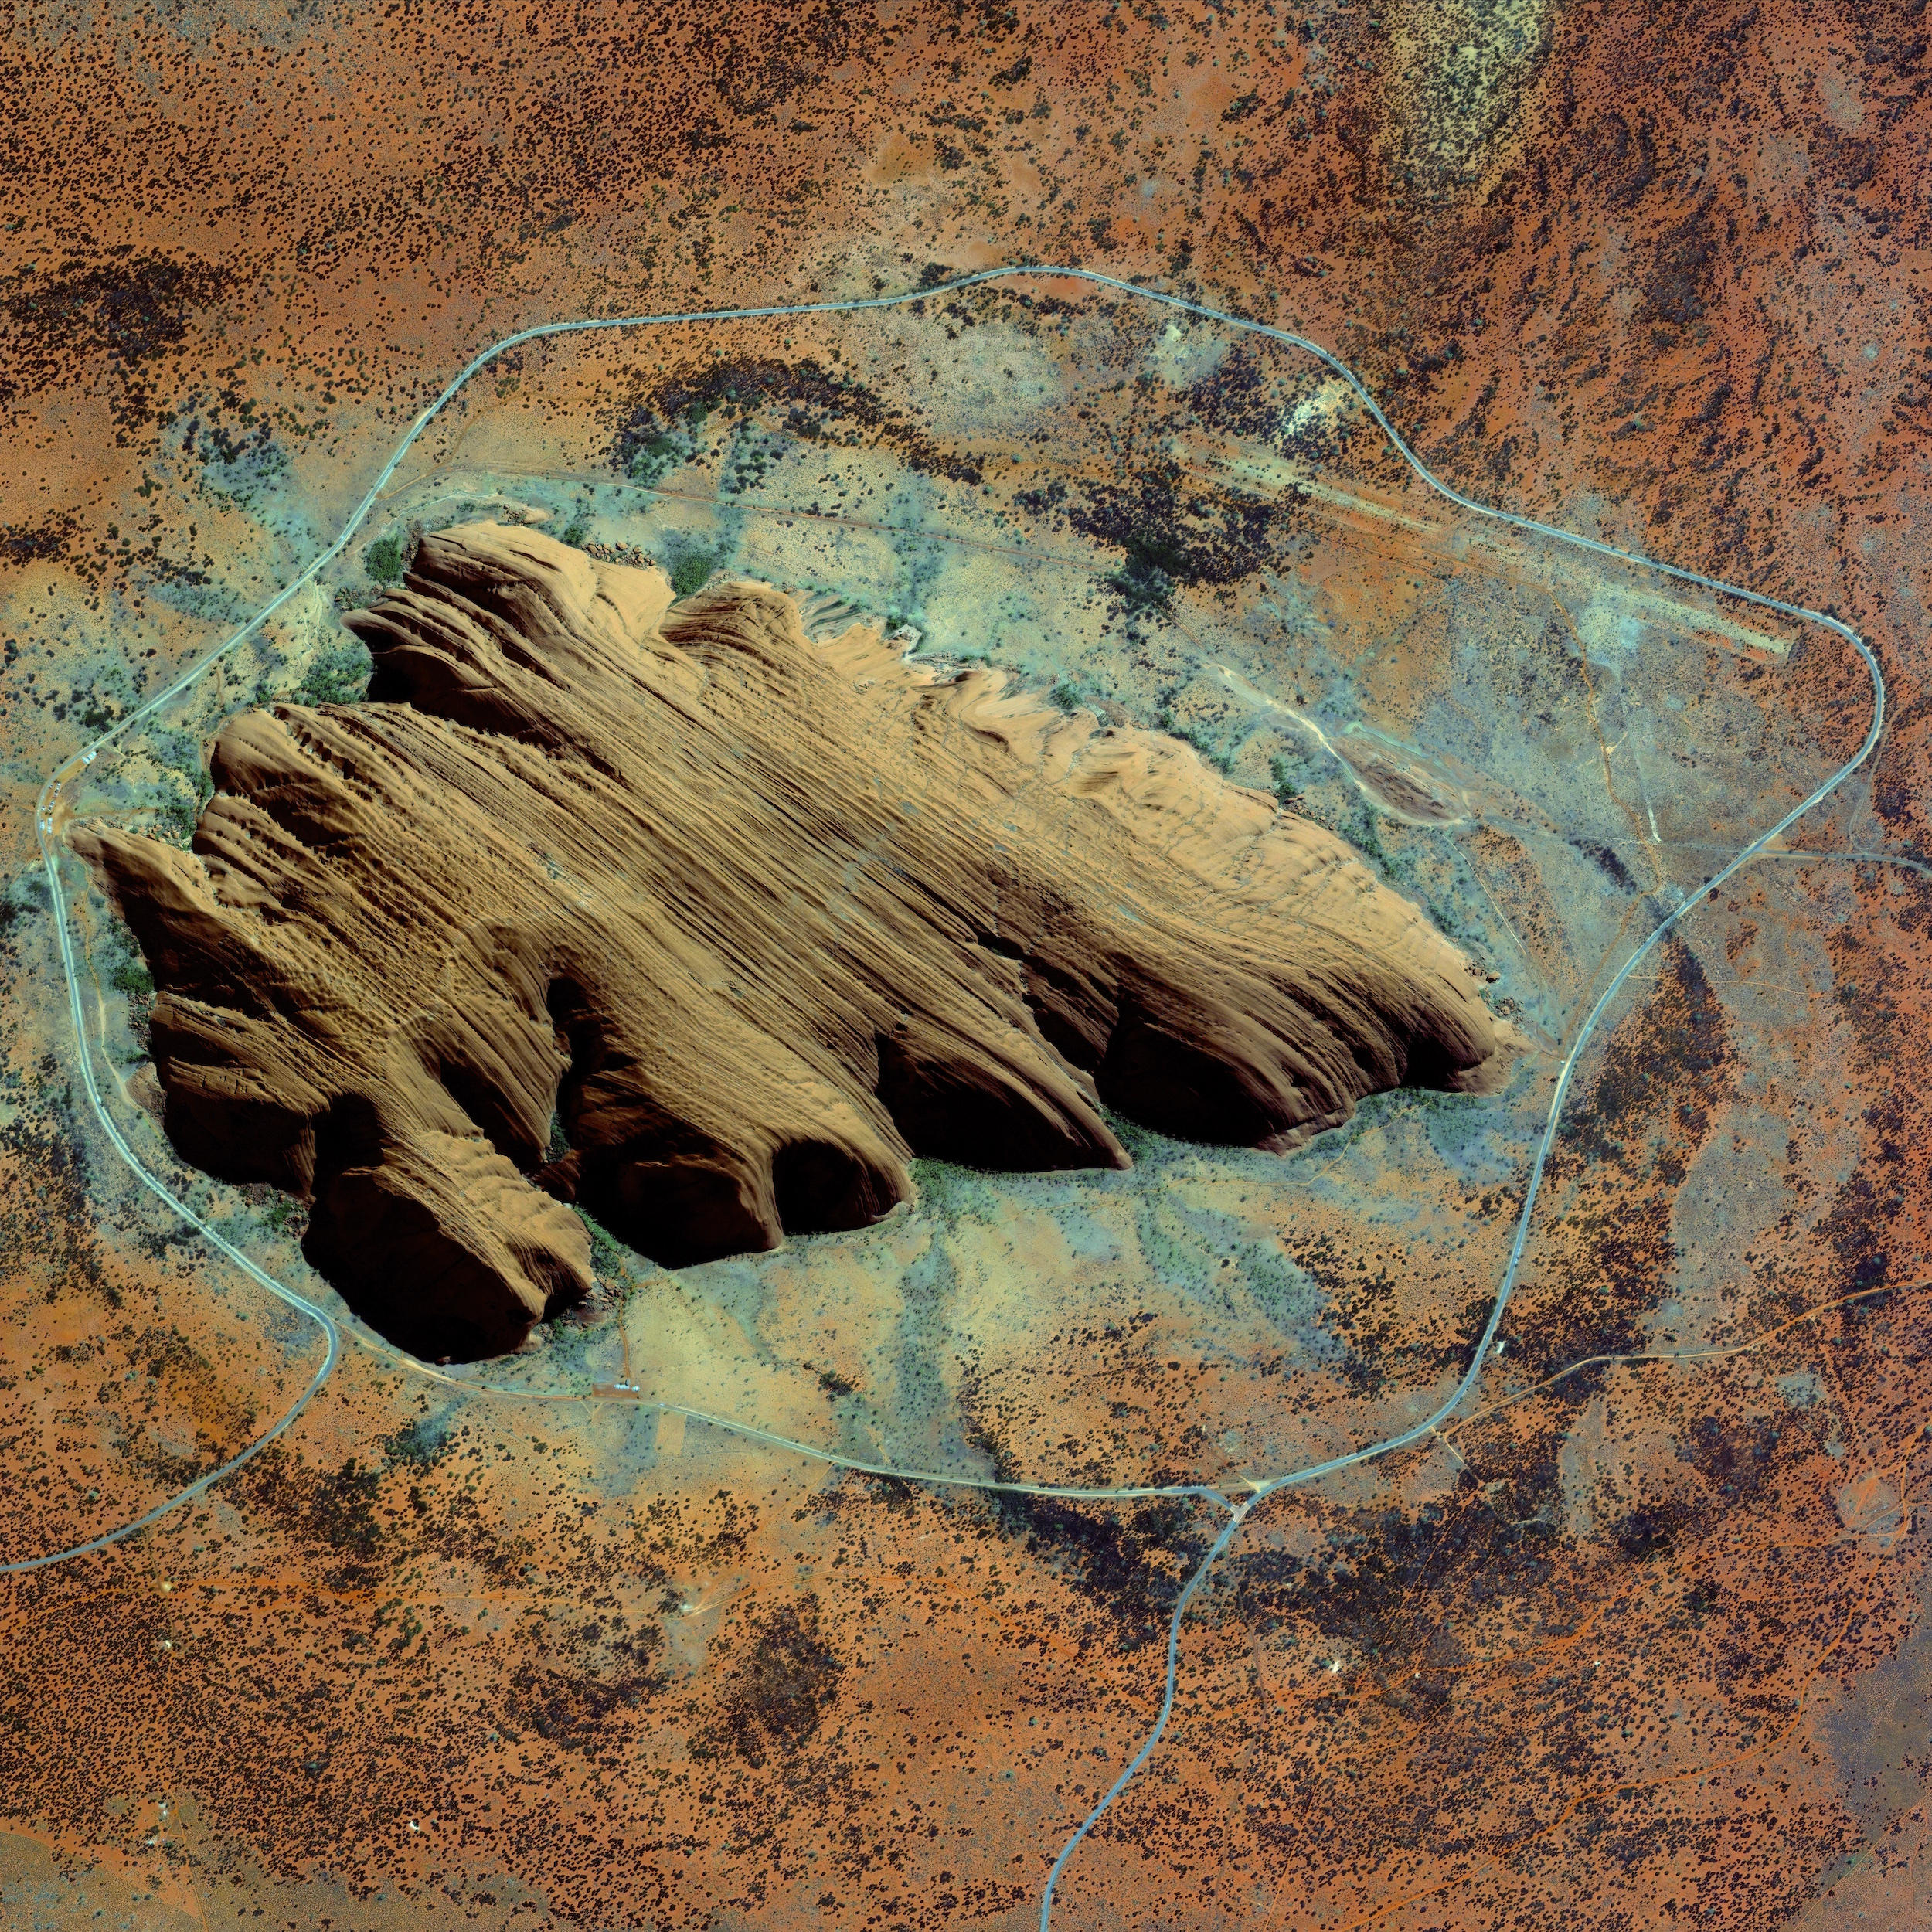 7/17/2015   Uluru / Ayers Rock   Northern Territory, Australia  25°20′42″S 131°02′10″E    Uluru, or Ayers Rock, is a large sandstone formation in the Northern Territory of Australia. The monolith - towering 1141 feet high with an expanse of 2.2 x 1.2 miles - is a sacred site to the Aboriginal people of the area who first settled there 10,000 years ago. While the first Australian tourists arrived at Uluru in 1936, annual visitor numbers rose to over 400,000 by the year 2000. Increased tourism at the site provides regional and national economic benefits, but also creates an ongoing challenge to balance conservation, cultural values, and visitor needs.